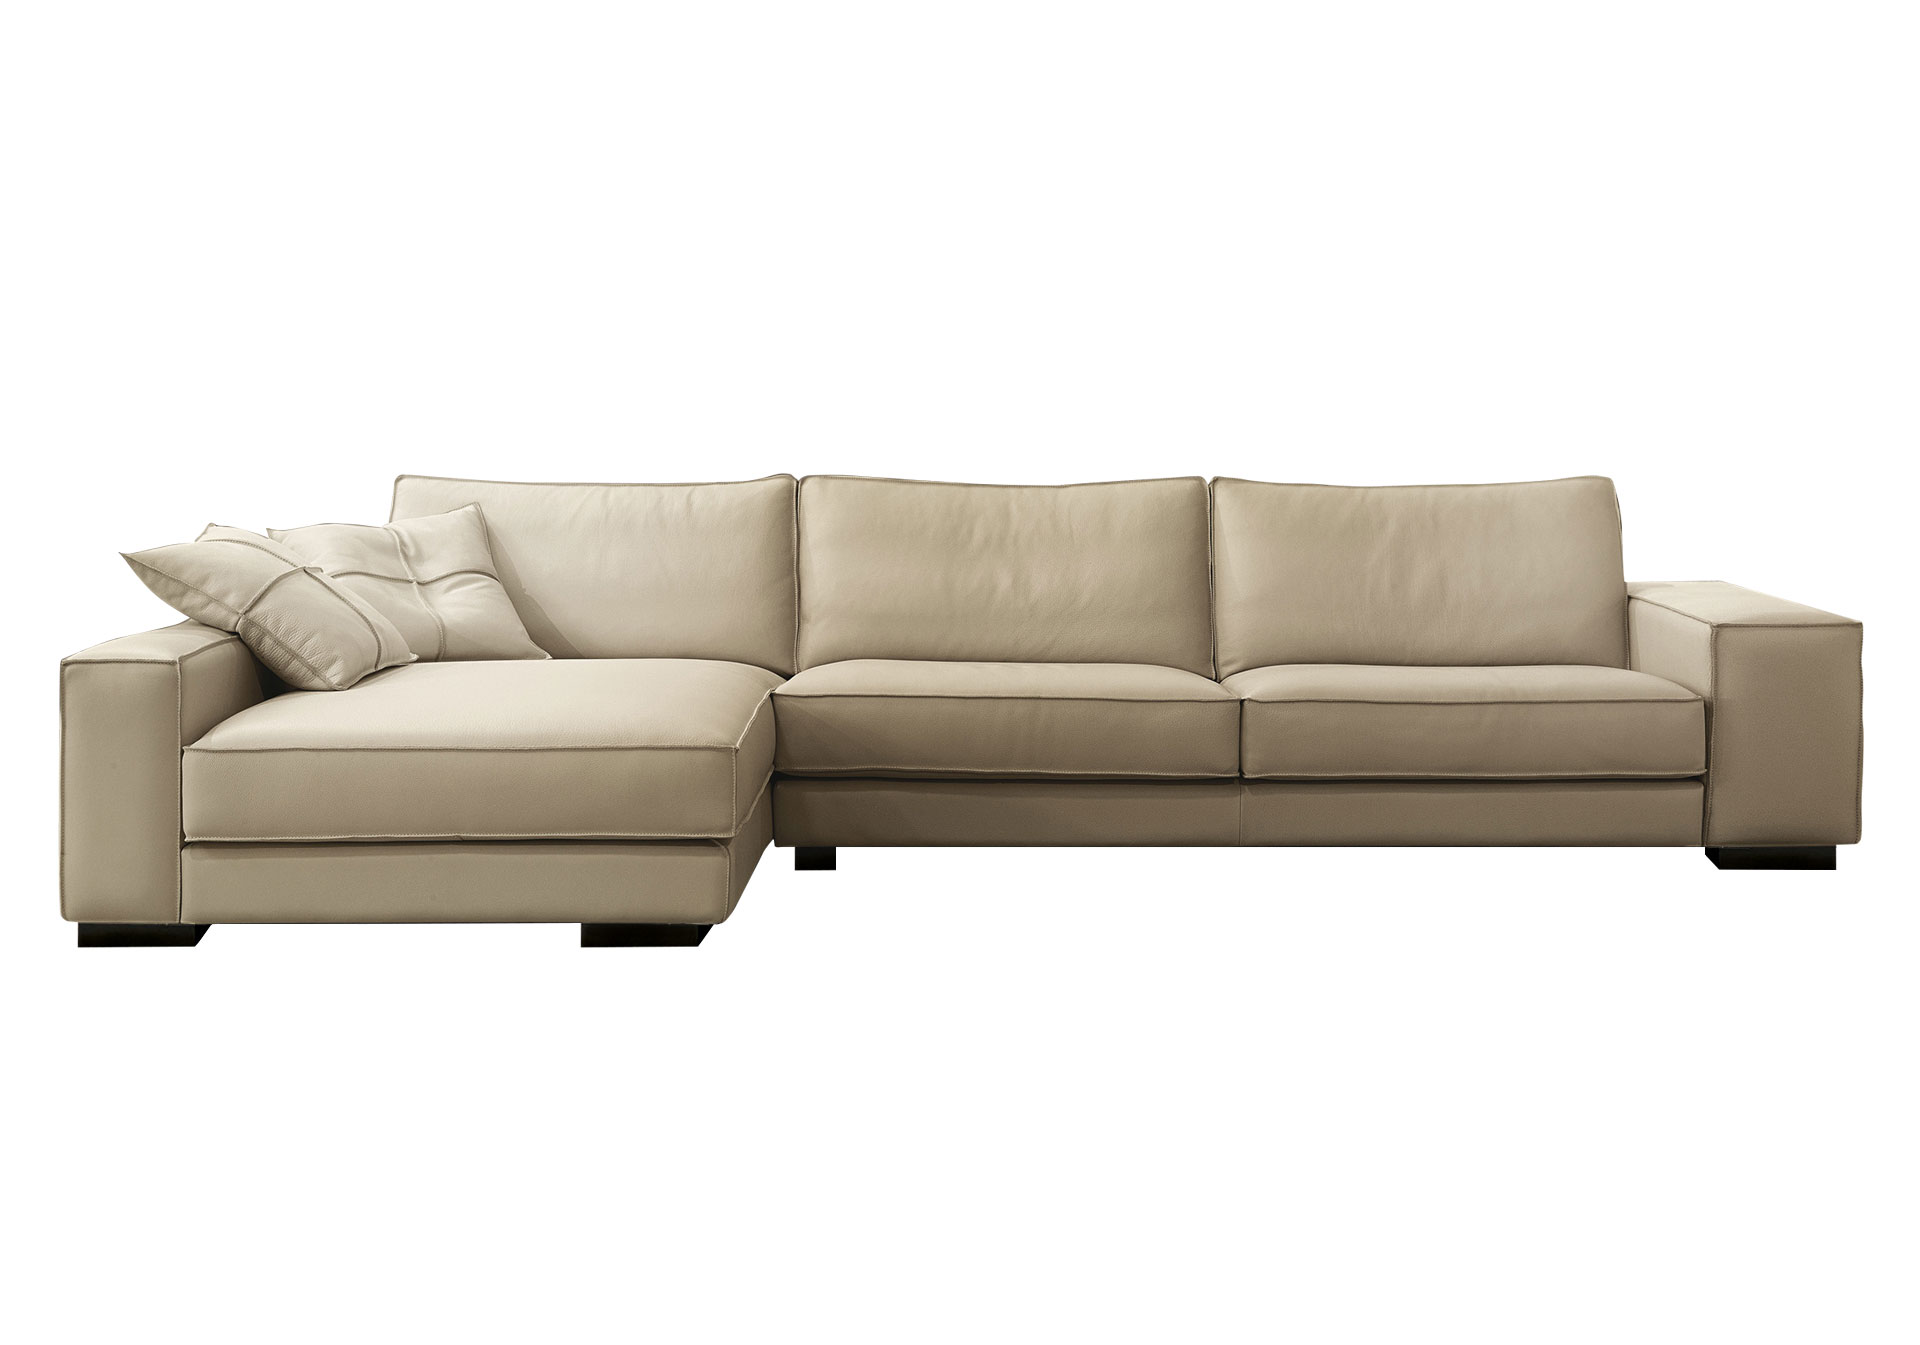 Living Divani Sofa Price Gamma Collection Gamma Arredamenti